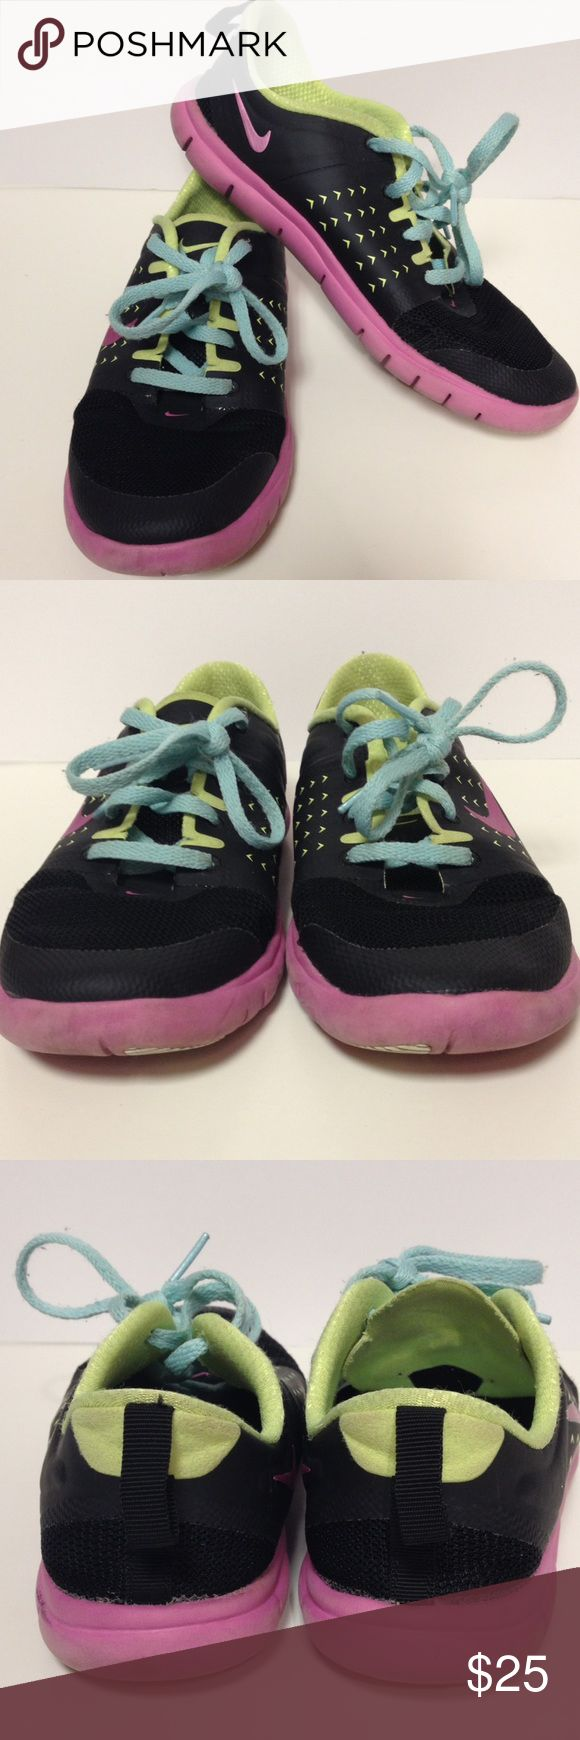 Nike tennis shoes size 2 Lightweight Nike tennis shoes.  Good clean used condition. Love the colors!! Nike Shoes Sneakers